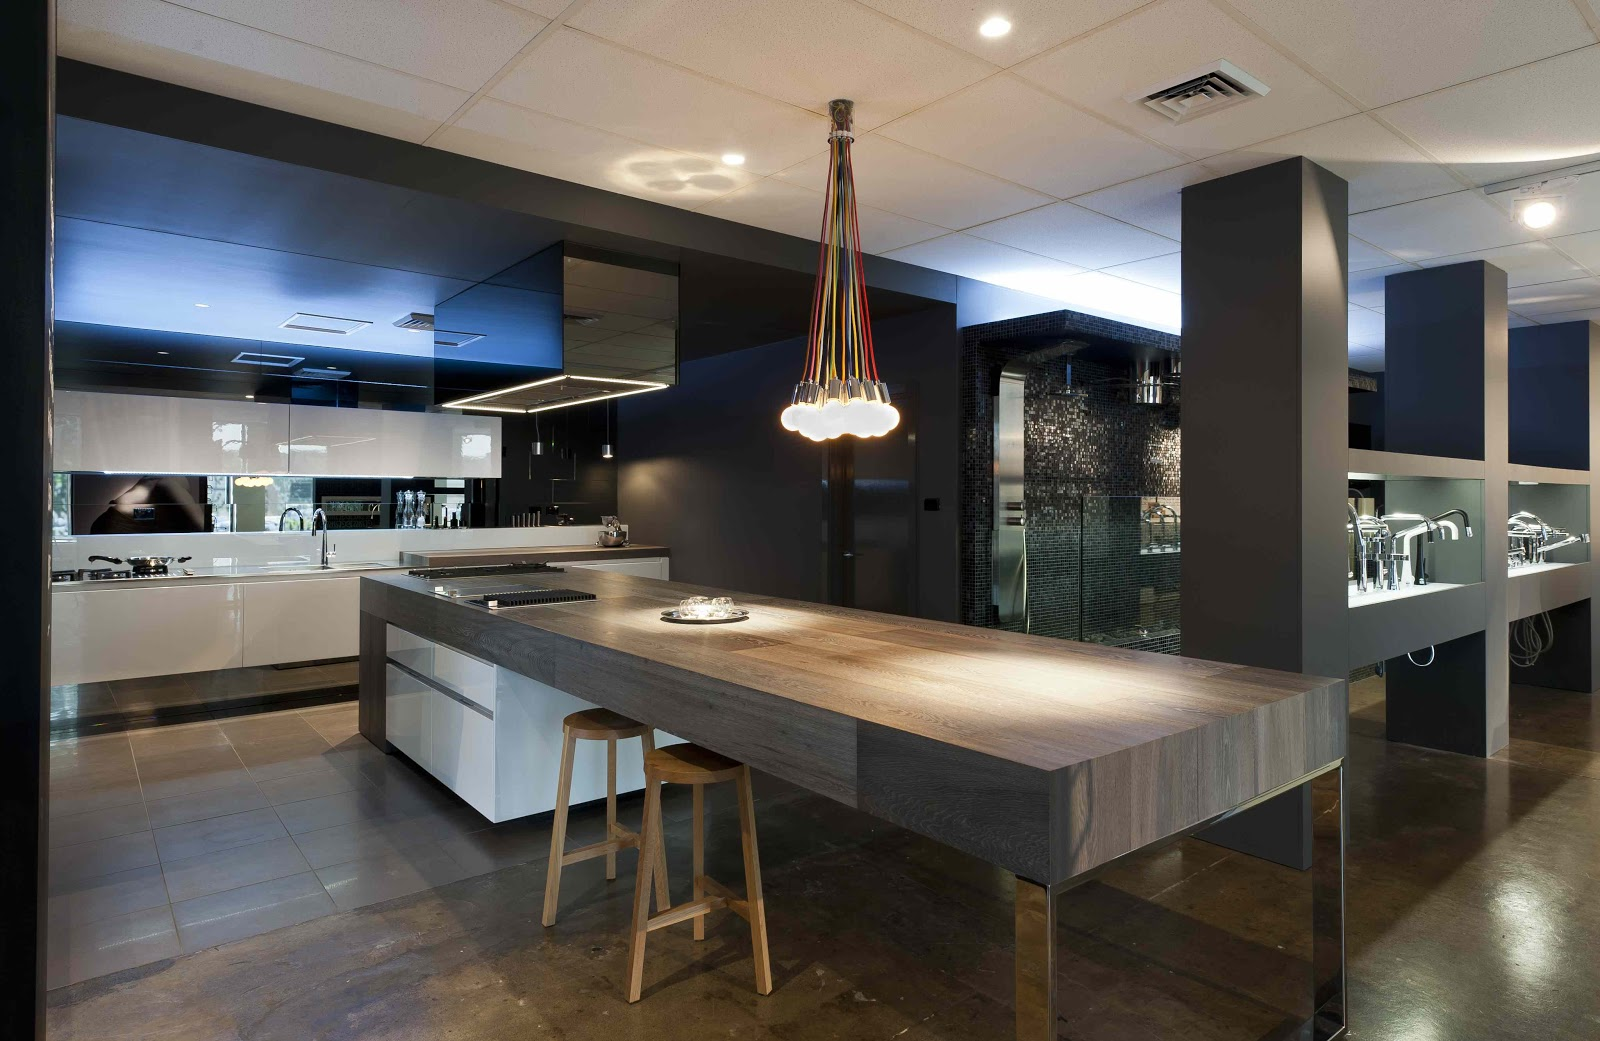 Minosa the cooks kitchen in south melbourne by minosa for Bar pour cuisine americaine